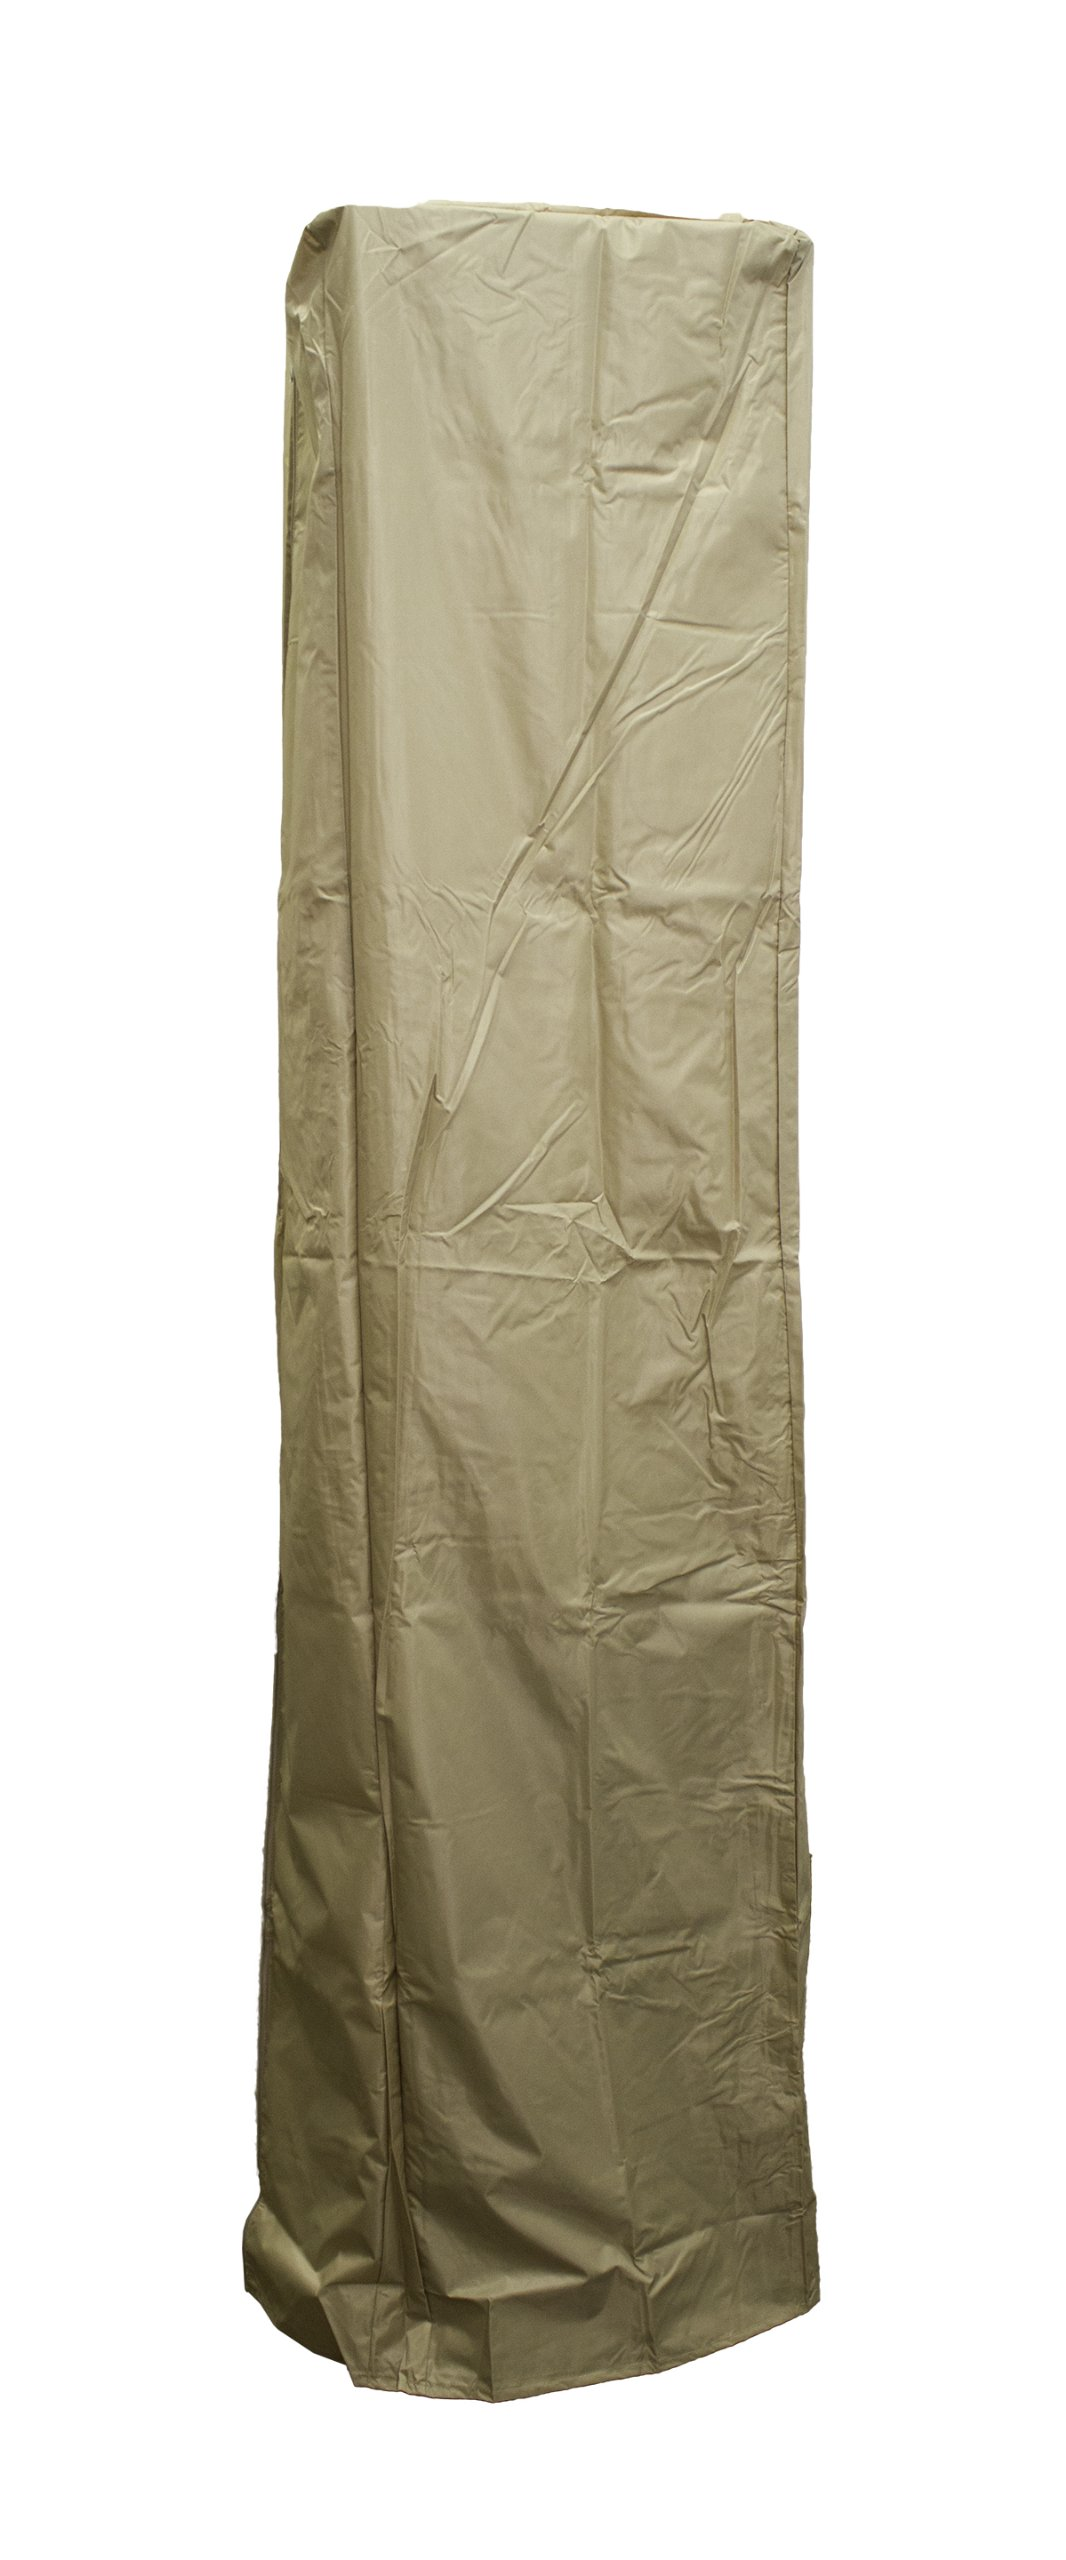 AZ Patio Heaters HVD-SGTCV-T Heavy Duty Glass Tube Cover in Camel Color, Square product image